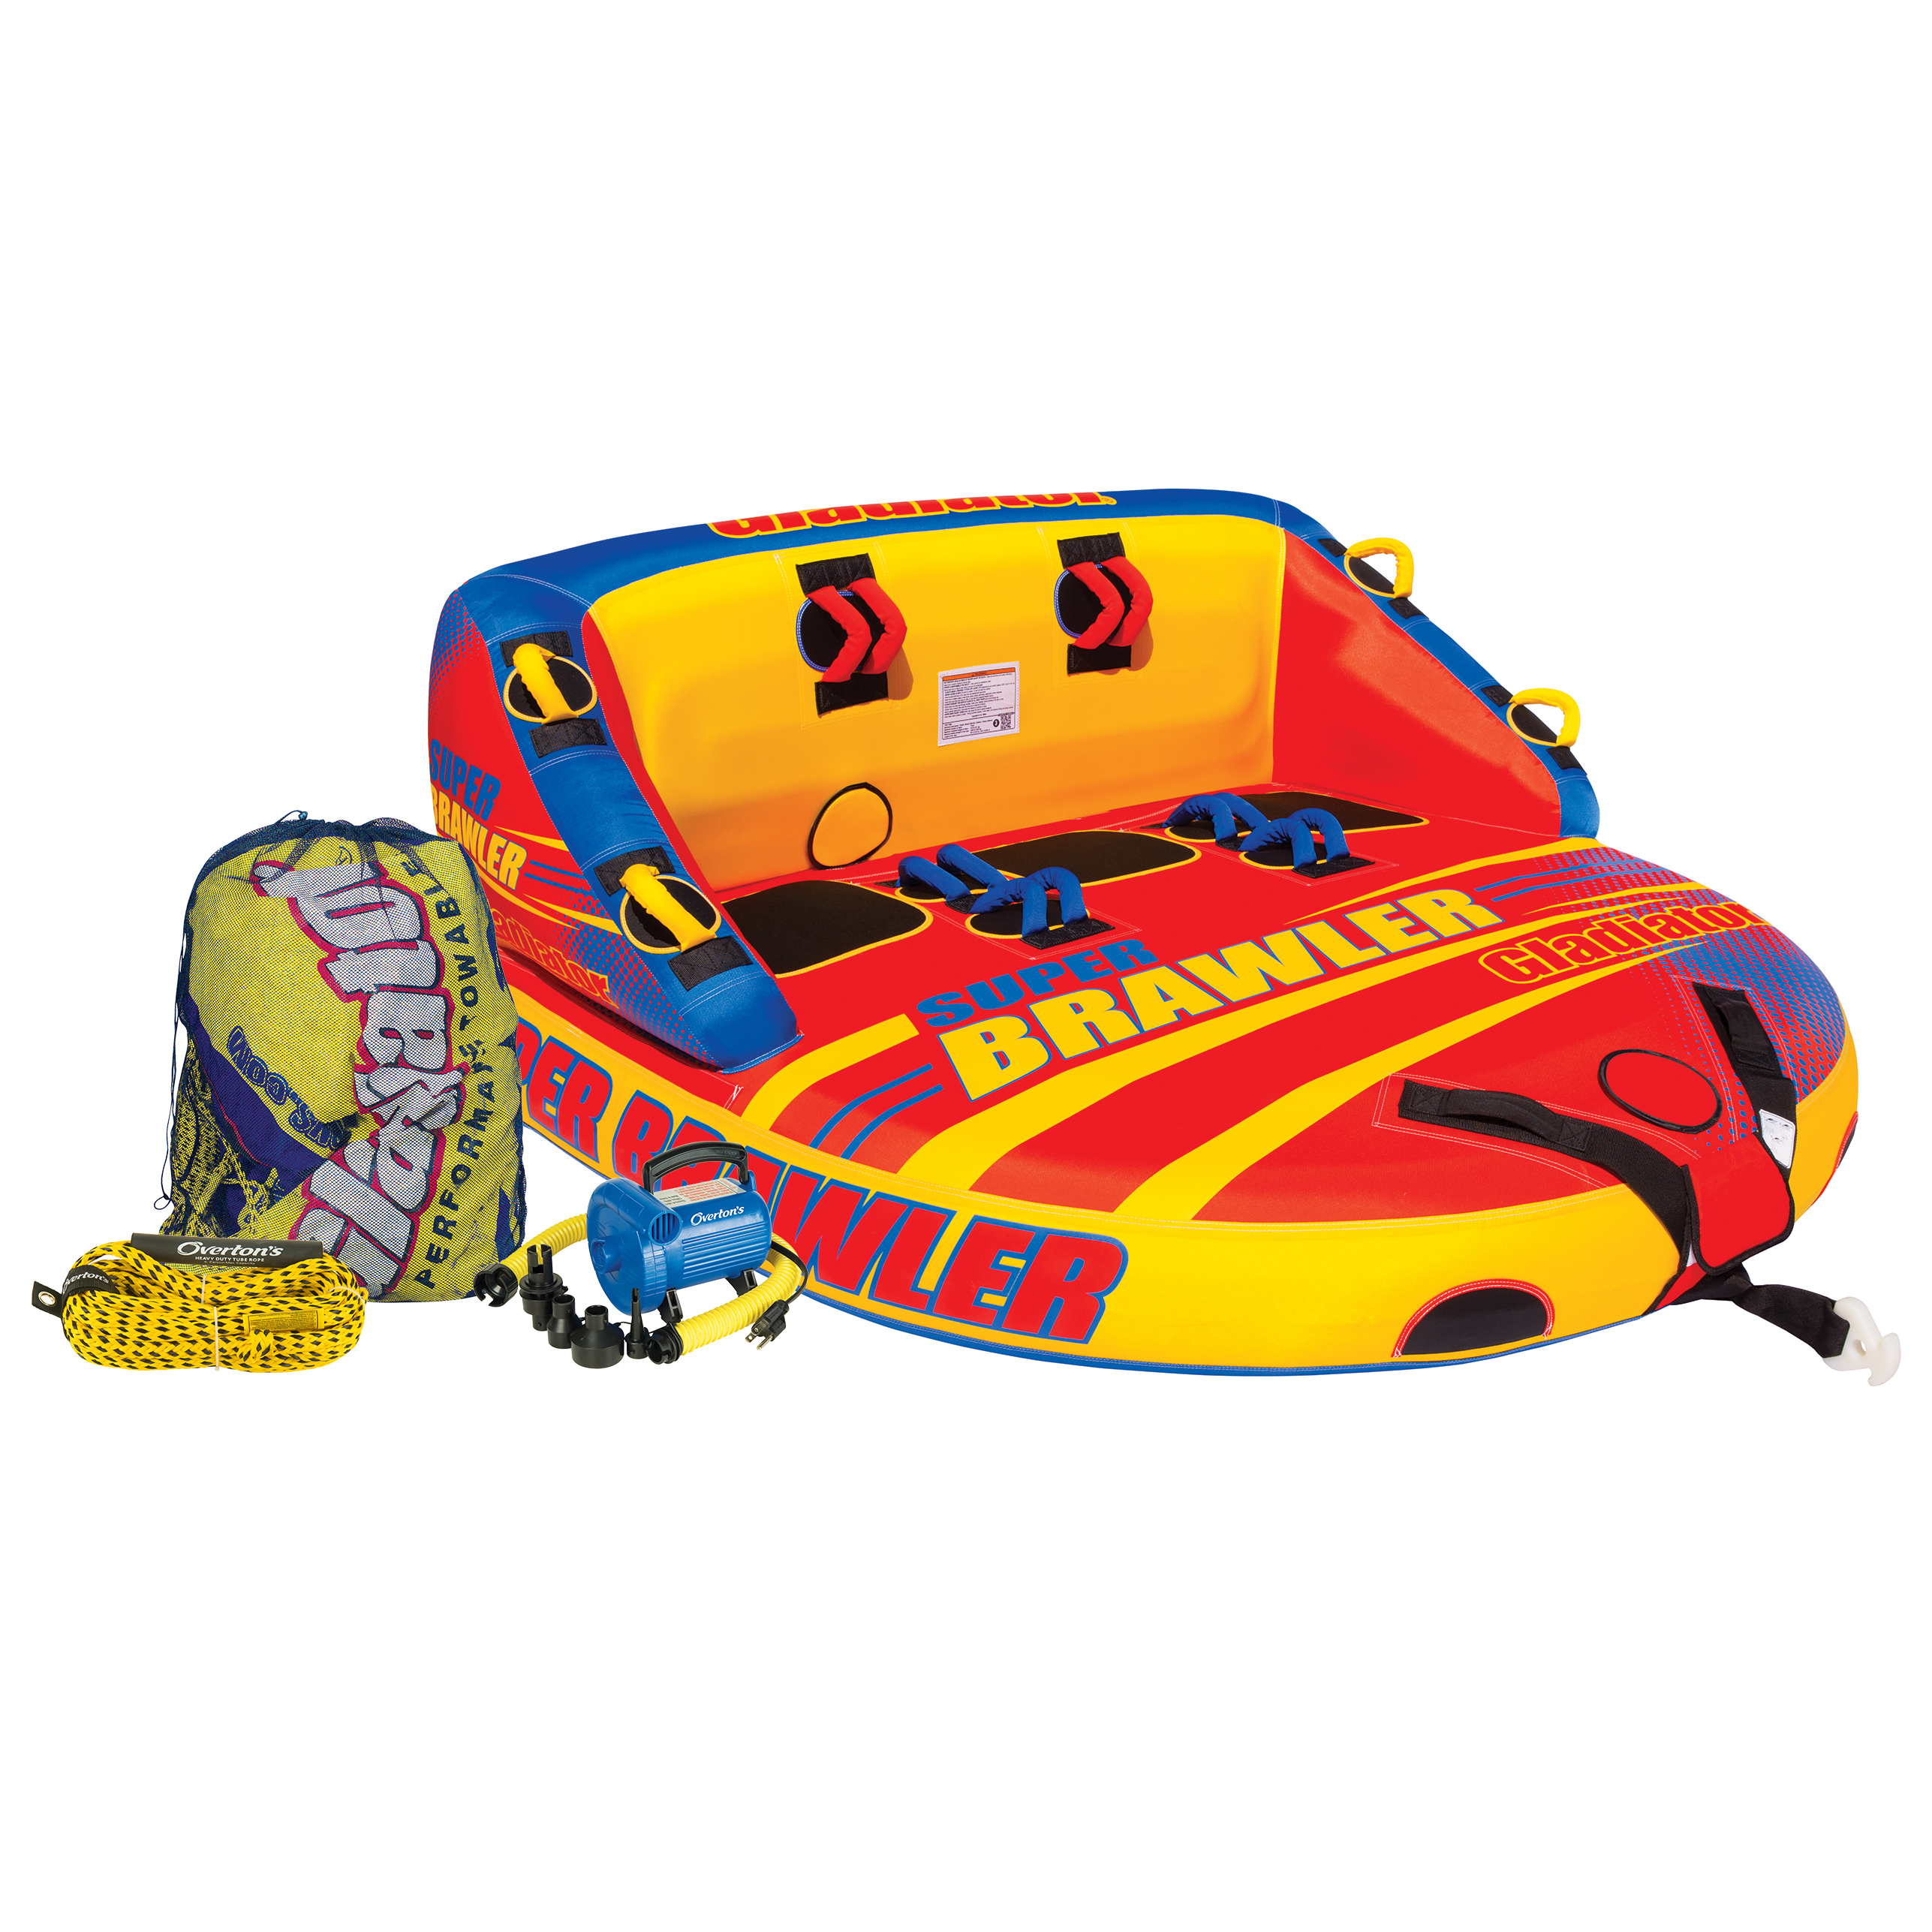 Gladiator Super Brawler 3-Person Towable Tube Package